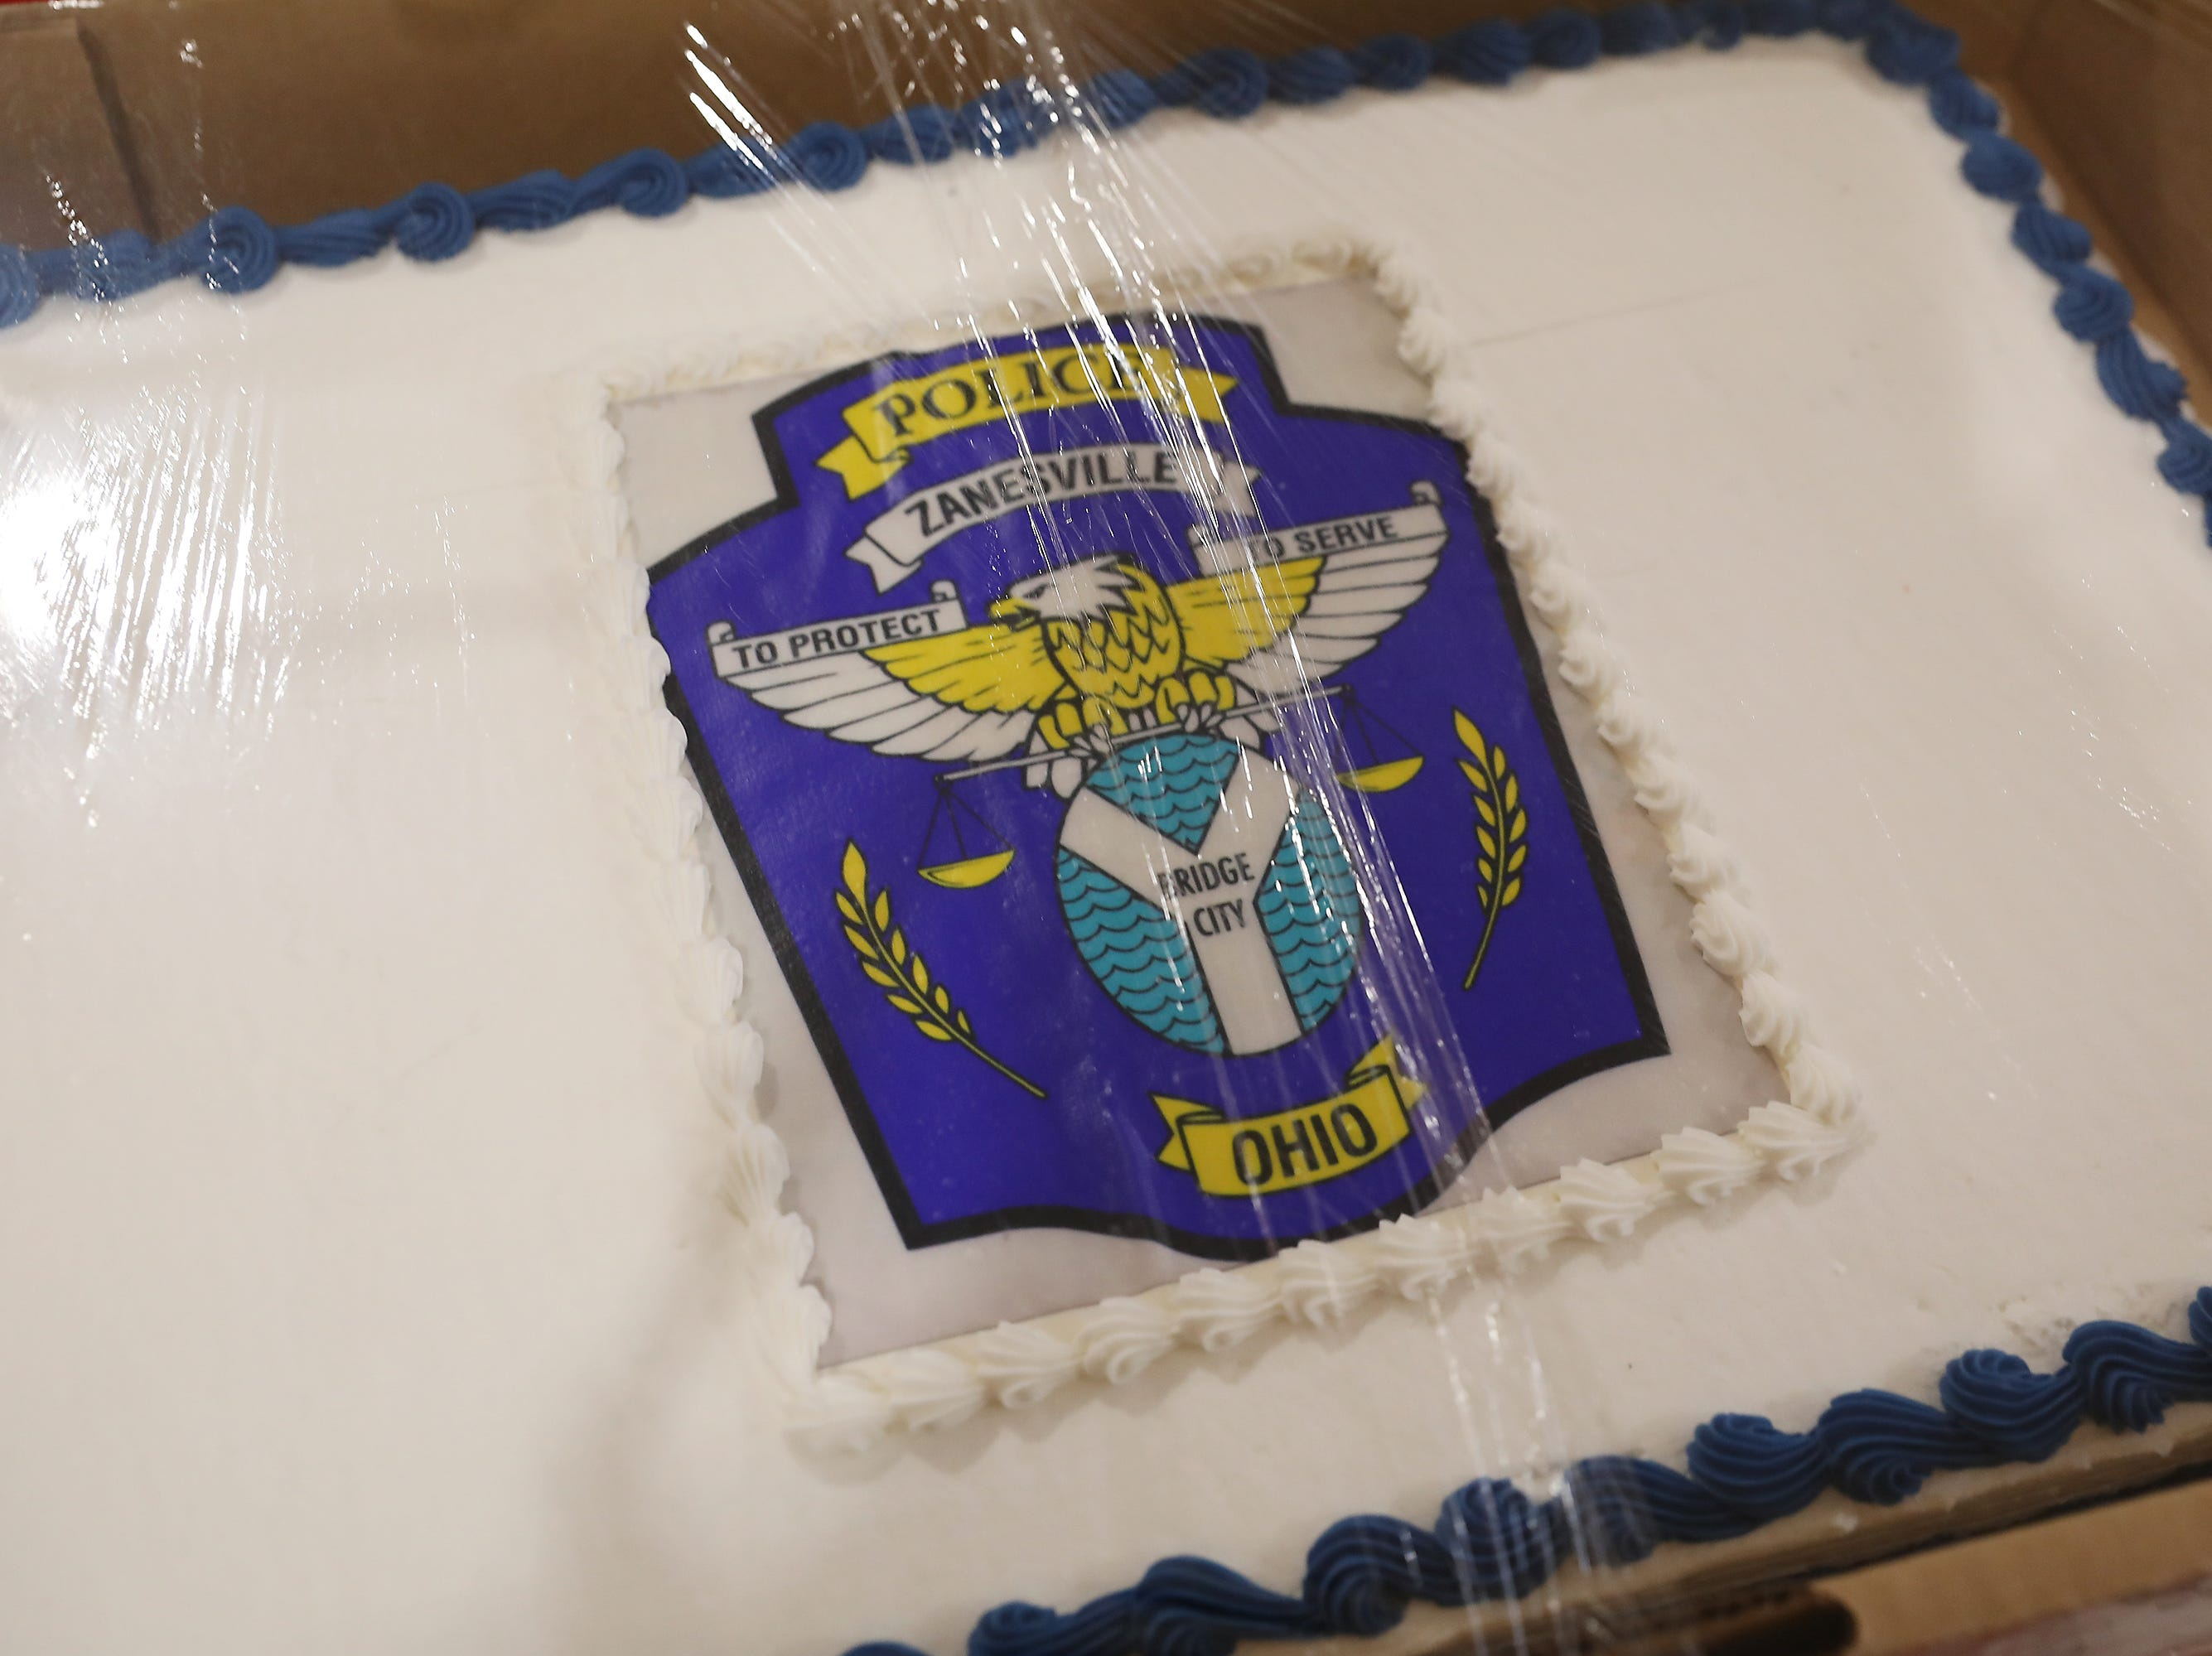 3 P.M. Friday cake 352 Zanesville Police Department - ride to school or K9 Demo, discount on Imperial Storage rental fee,  Amish basket with local items